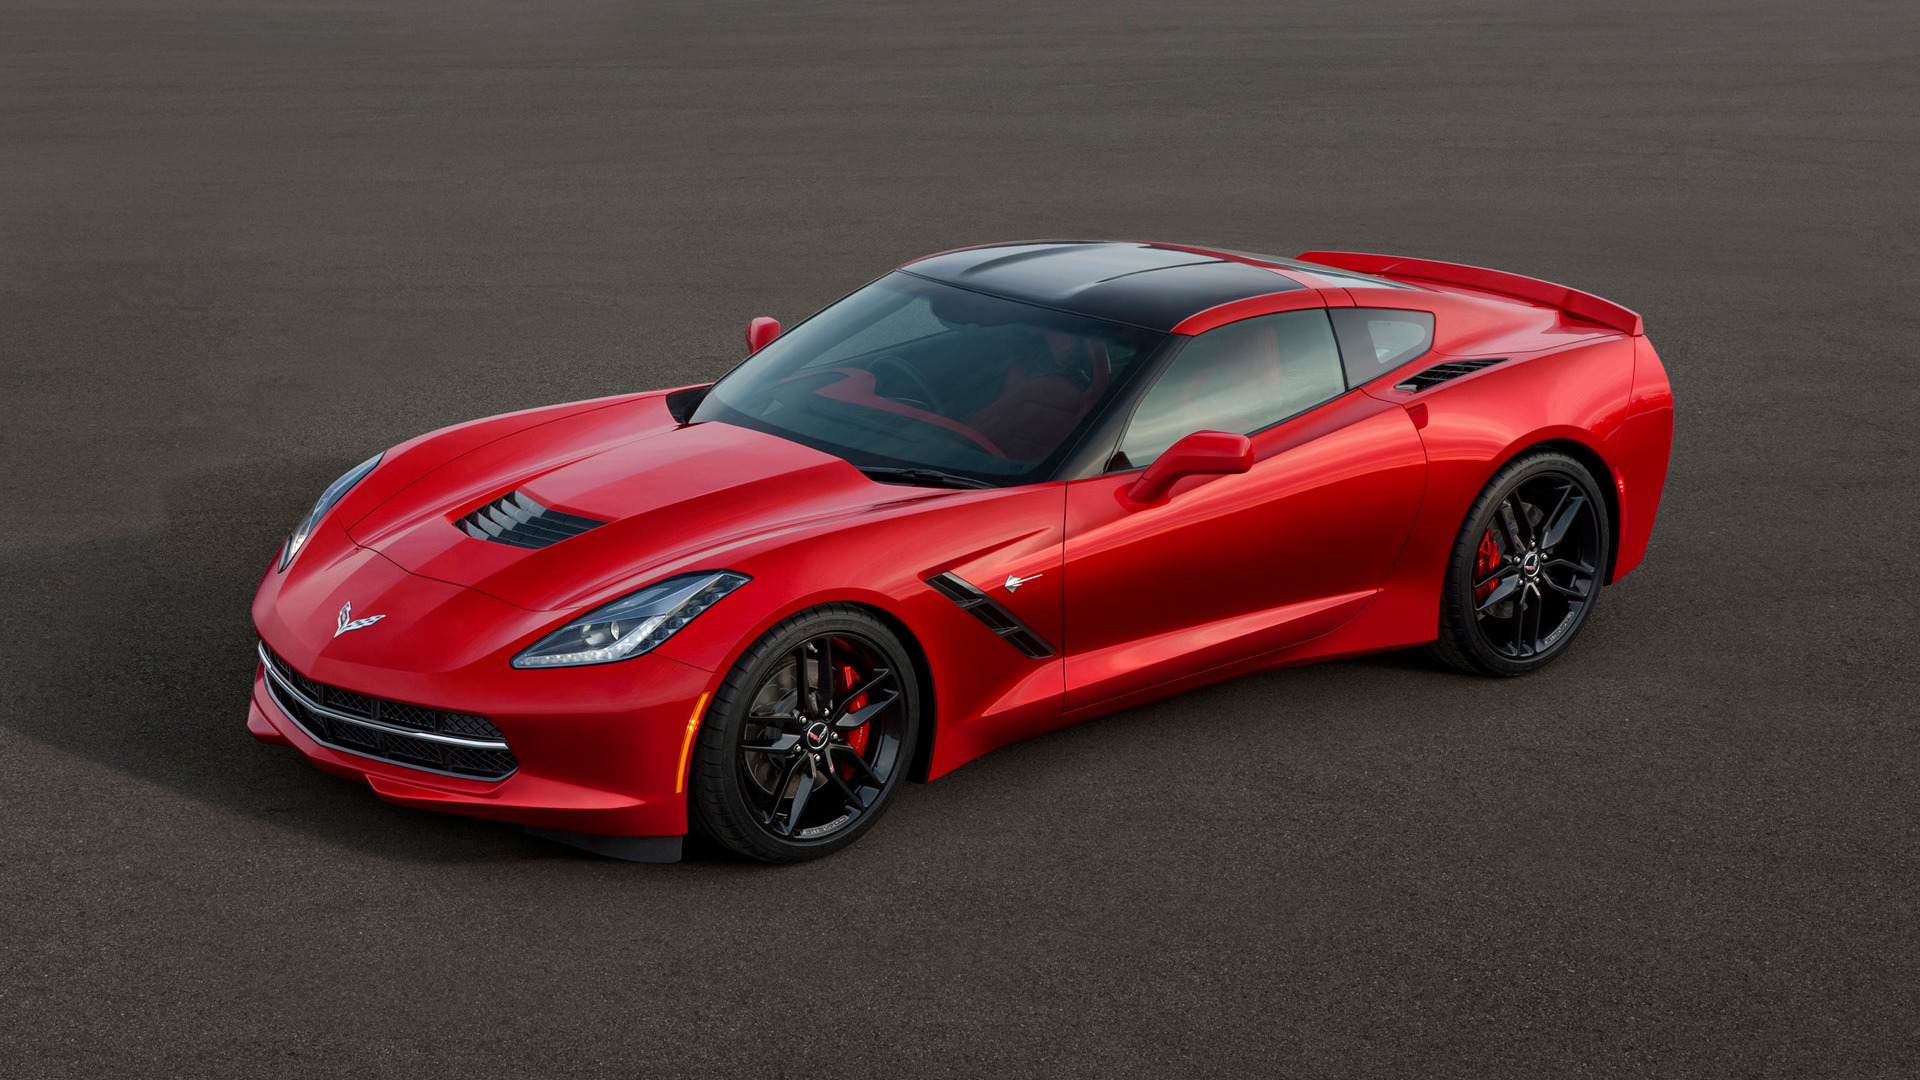 2014 Chevrolet Corvette Stingray wallpaper 44 1920x1080